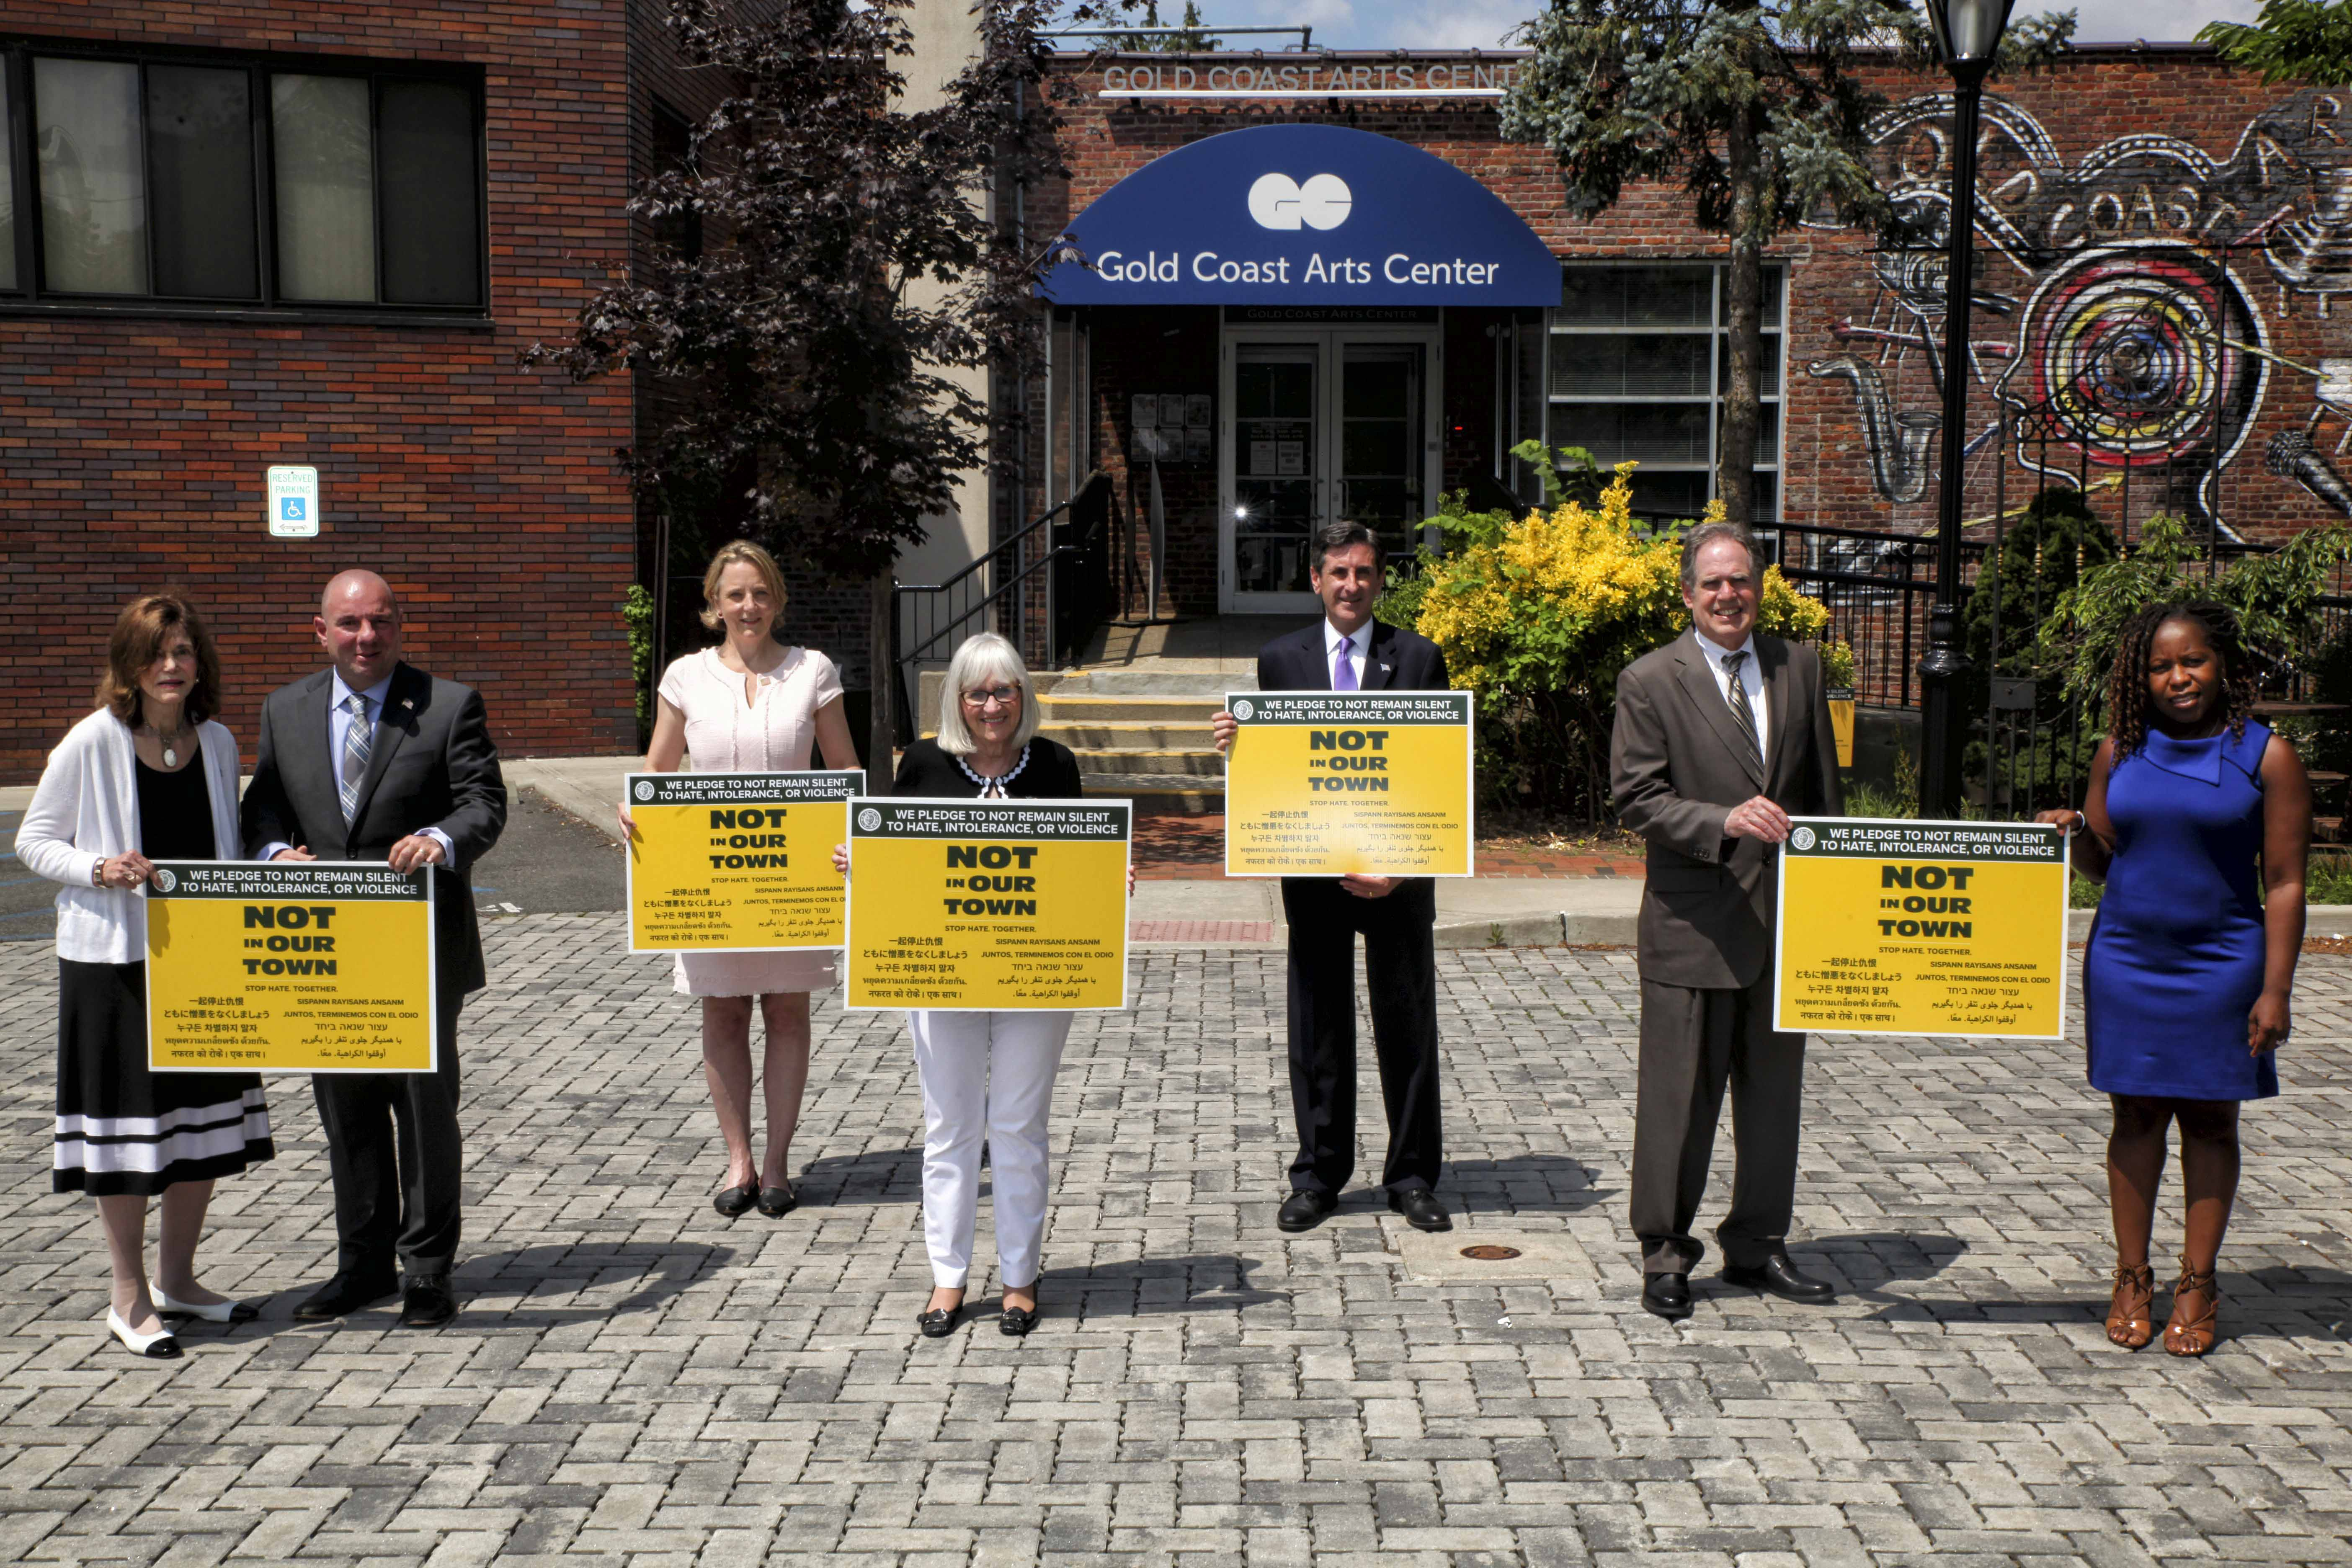 """The lawn signs feature the """"Not In Our Town"""" initiative and messages to stop hate in: Arabic, Chinese, Farsi, Haitian Creole, Hindi, Hebrew Japanese, Korean, Spanish, and Thai."""